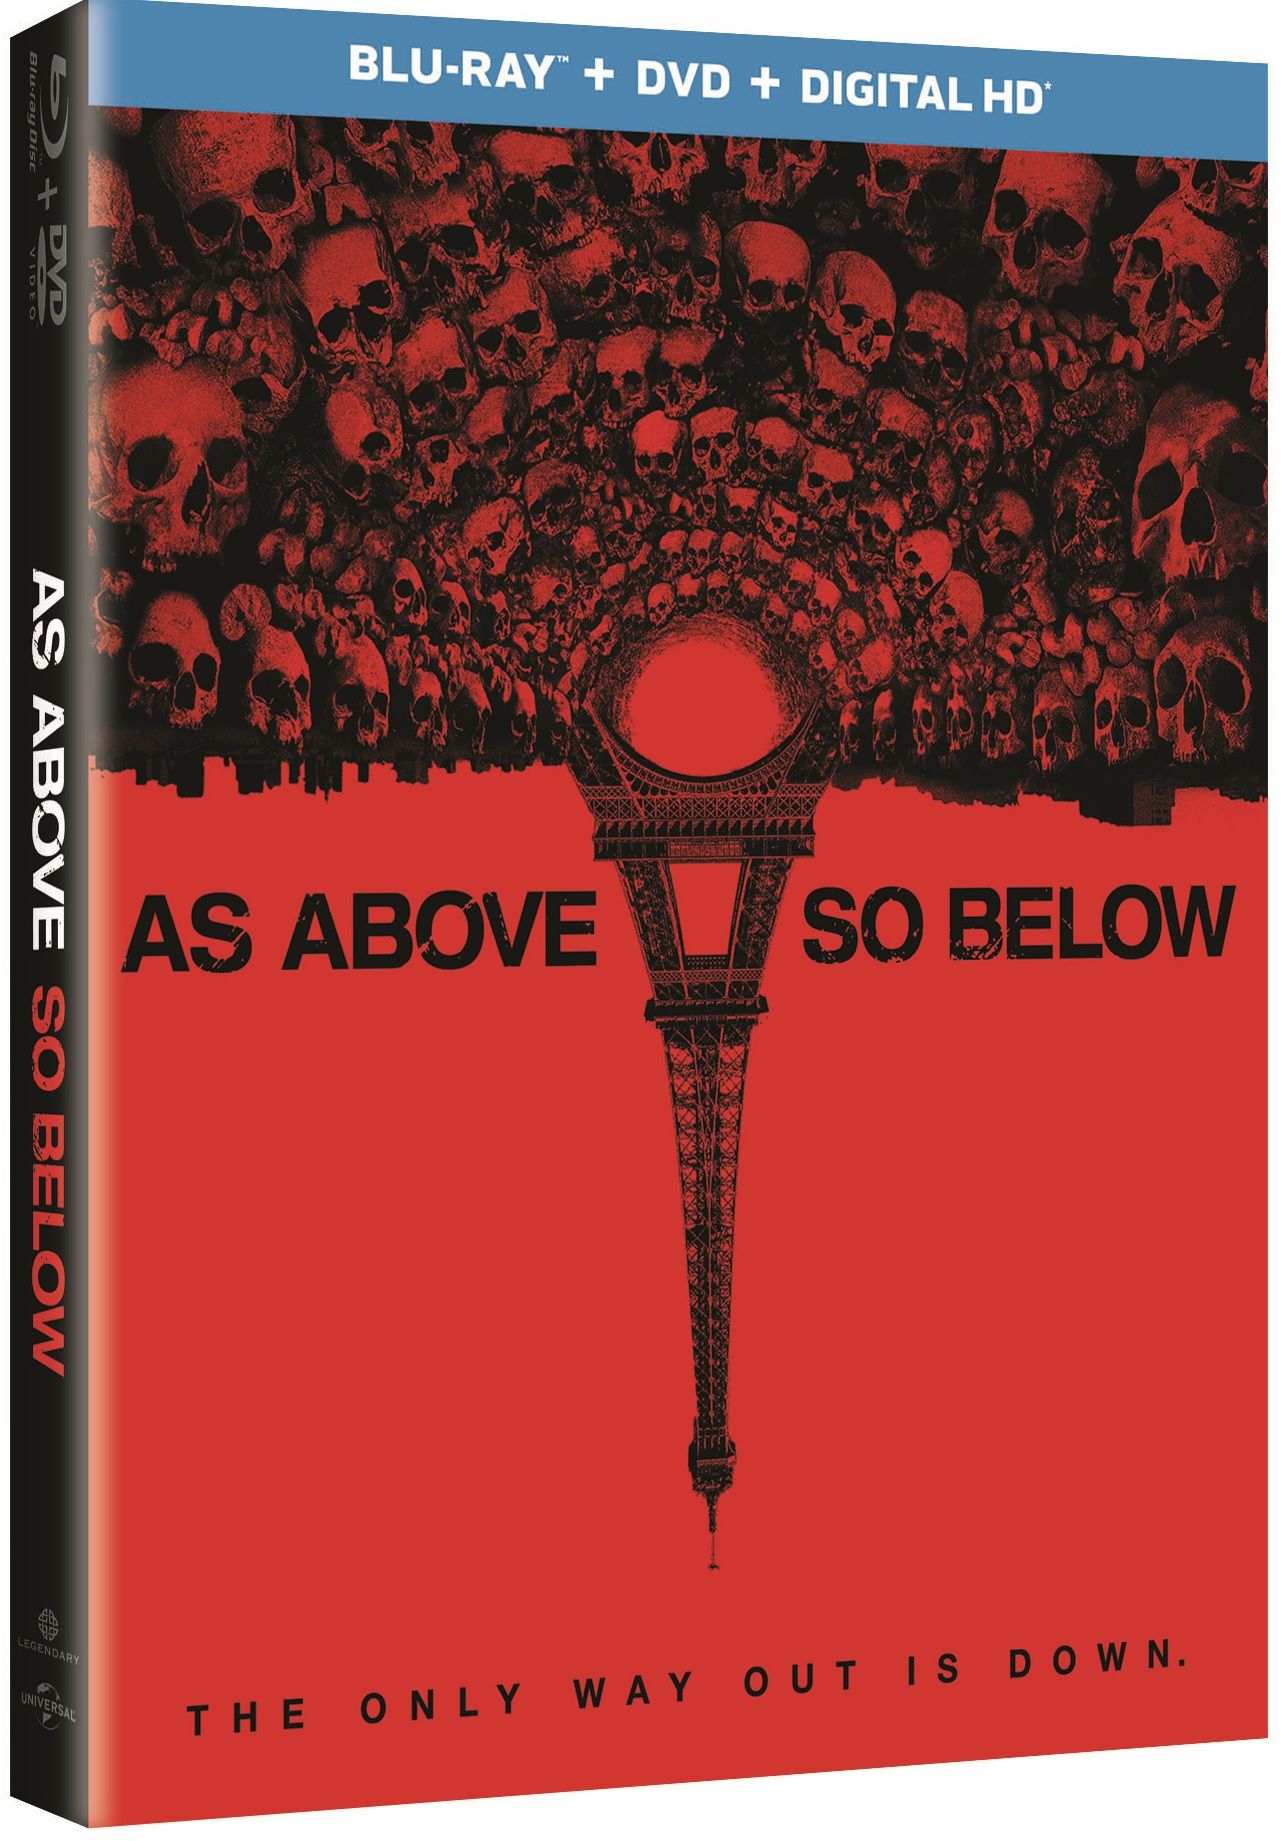 As Above, So Below Blu-ray Review